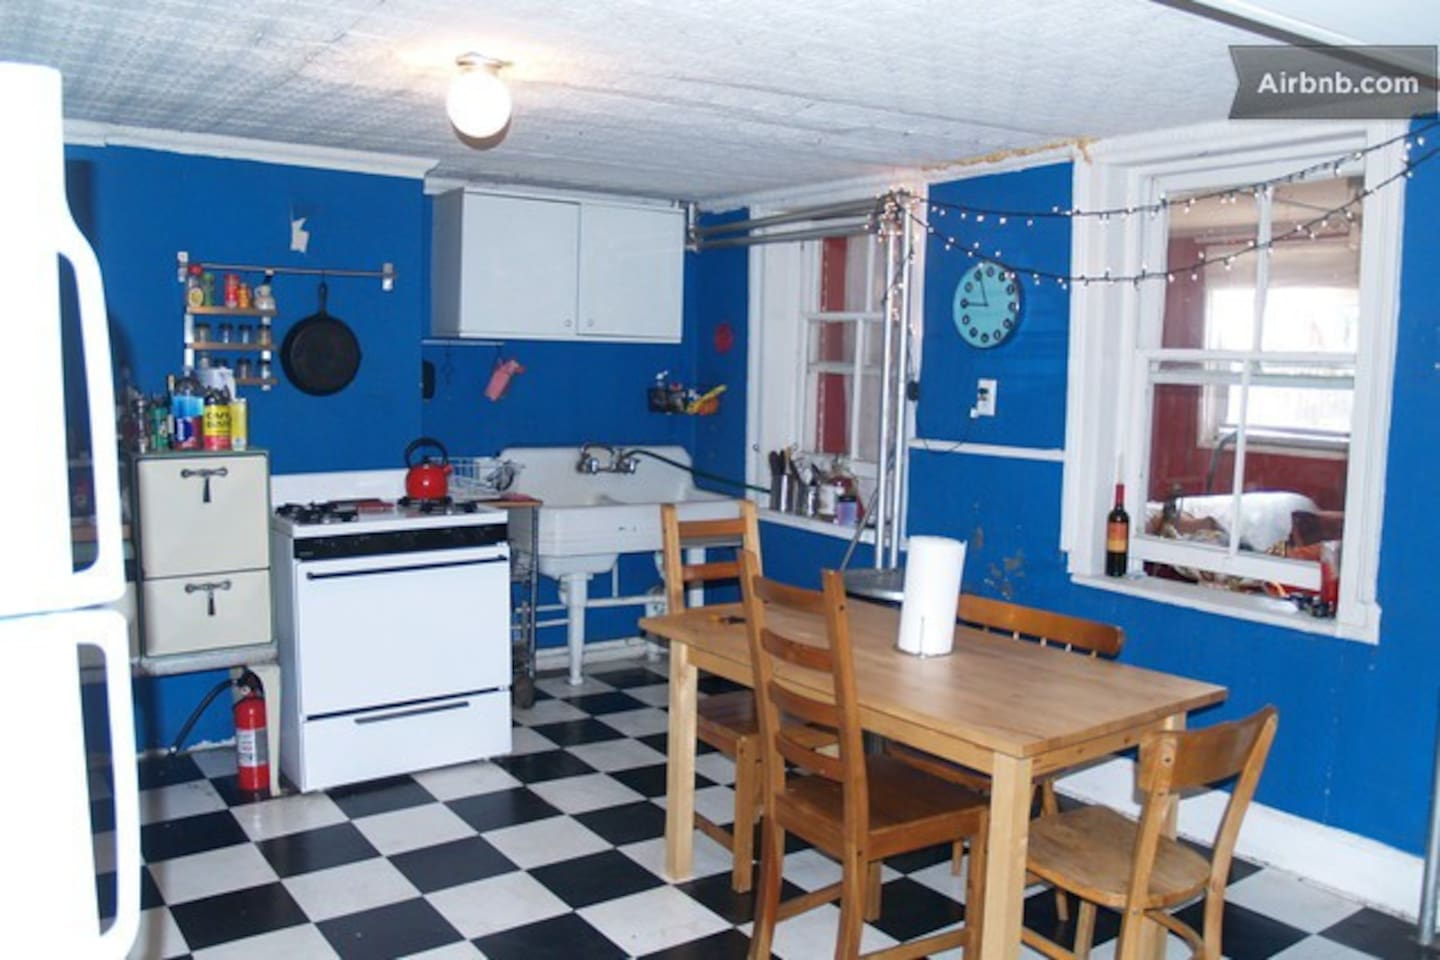 Our very large kitchen where most people like to hang out